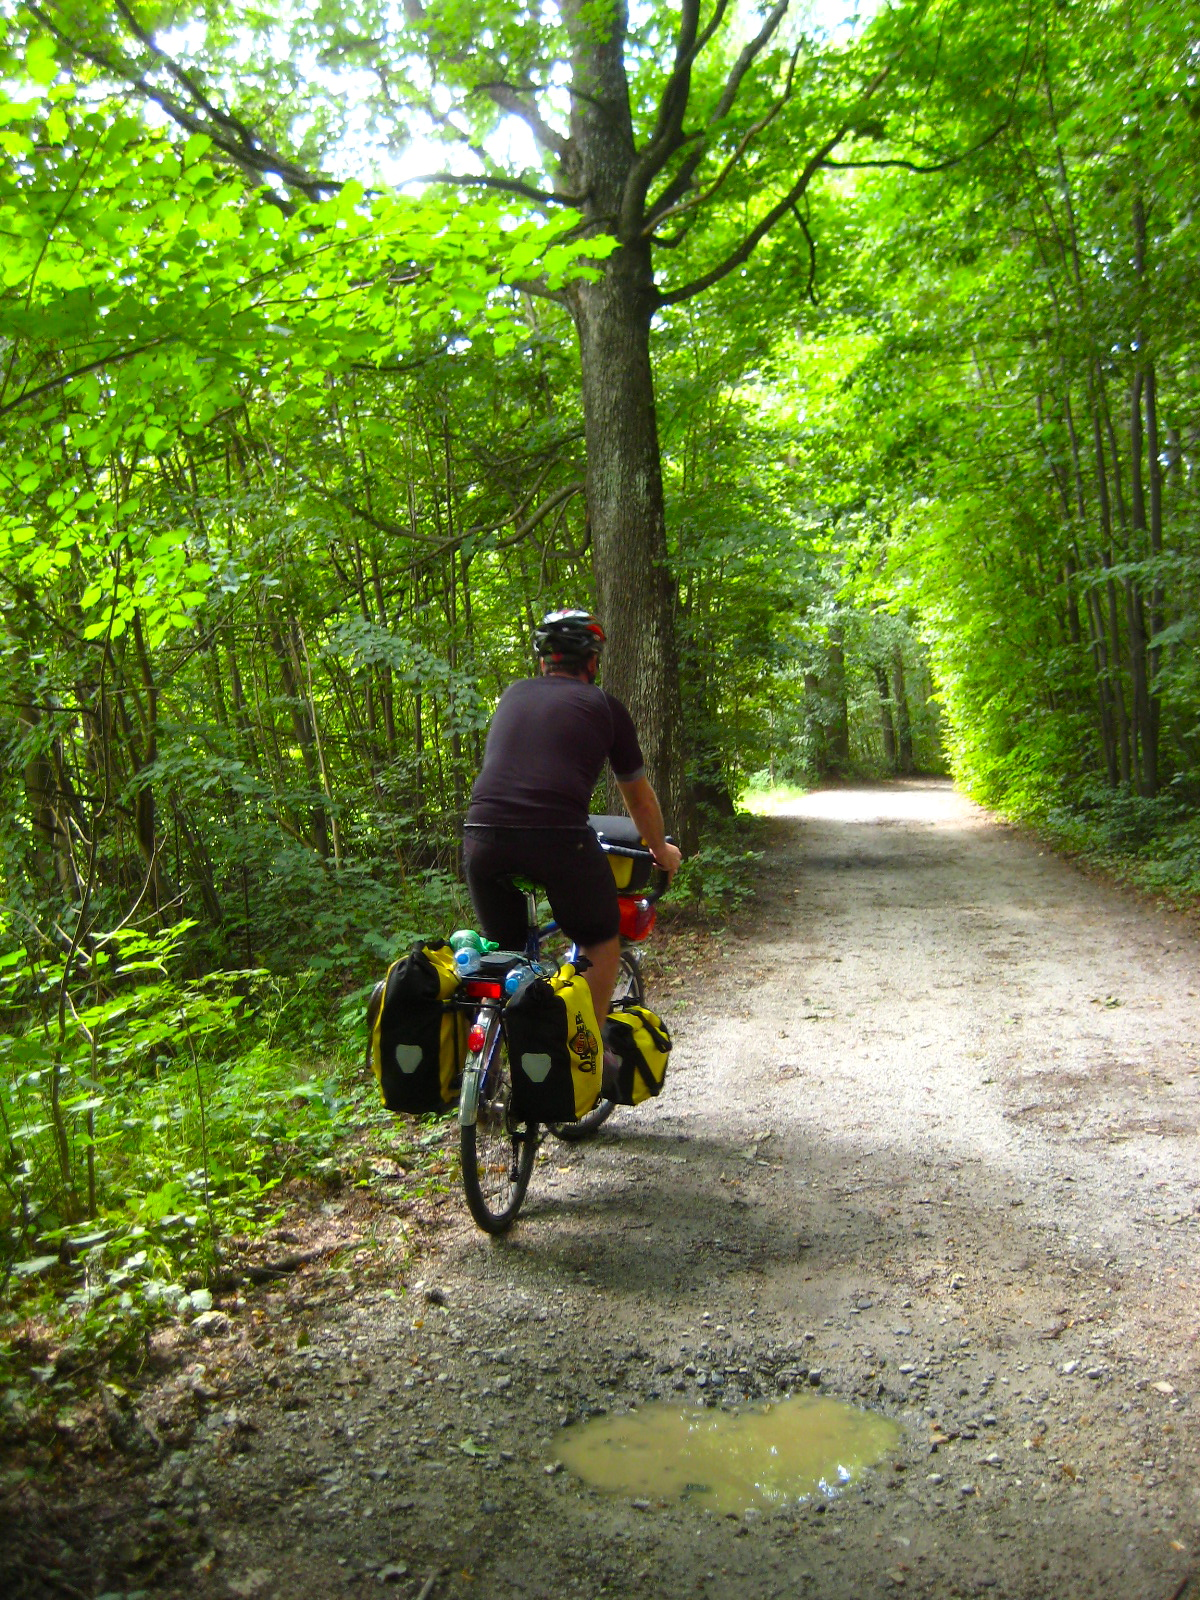 Top 5 Myths About Bicycle Travel And How To Dispel Them